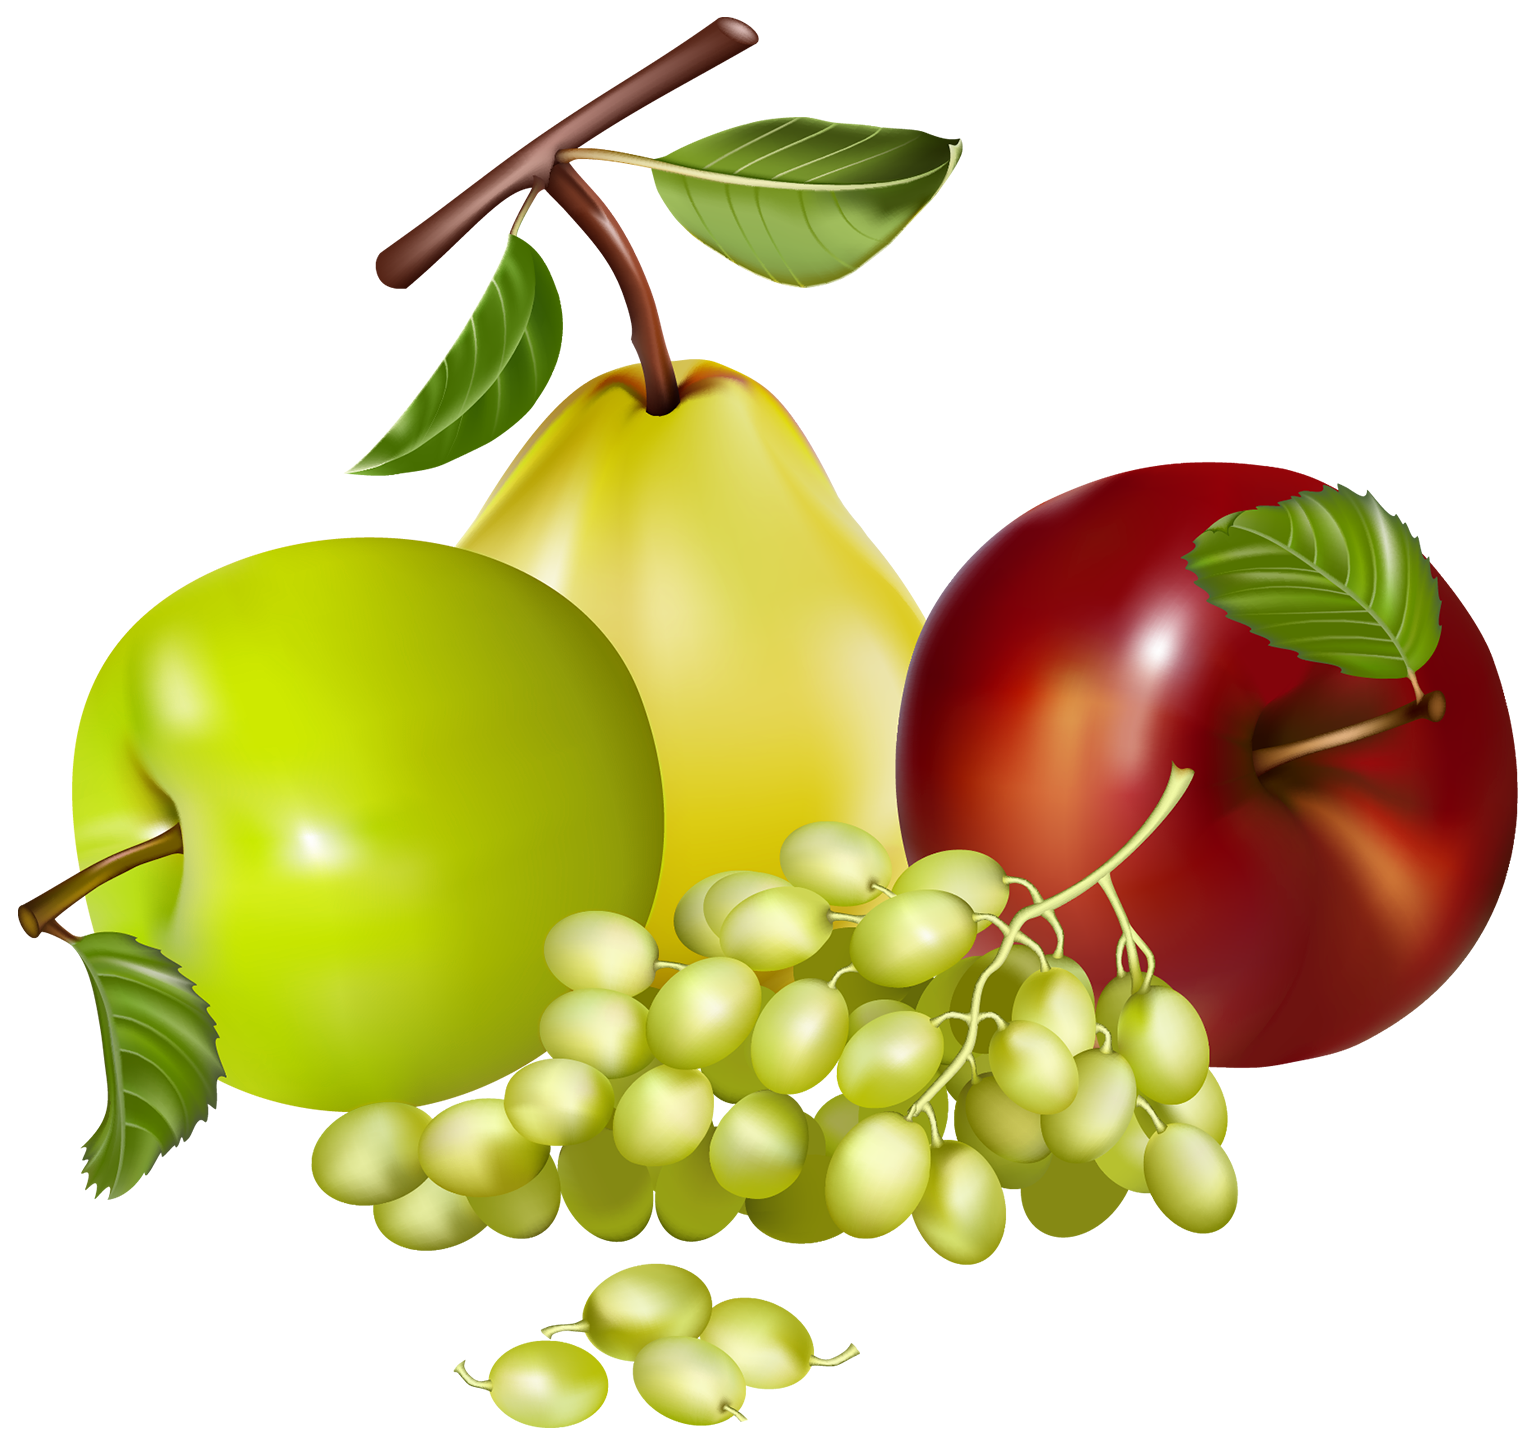 Fruit clip art png. Mixed fruits clipart best